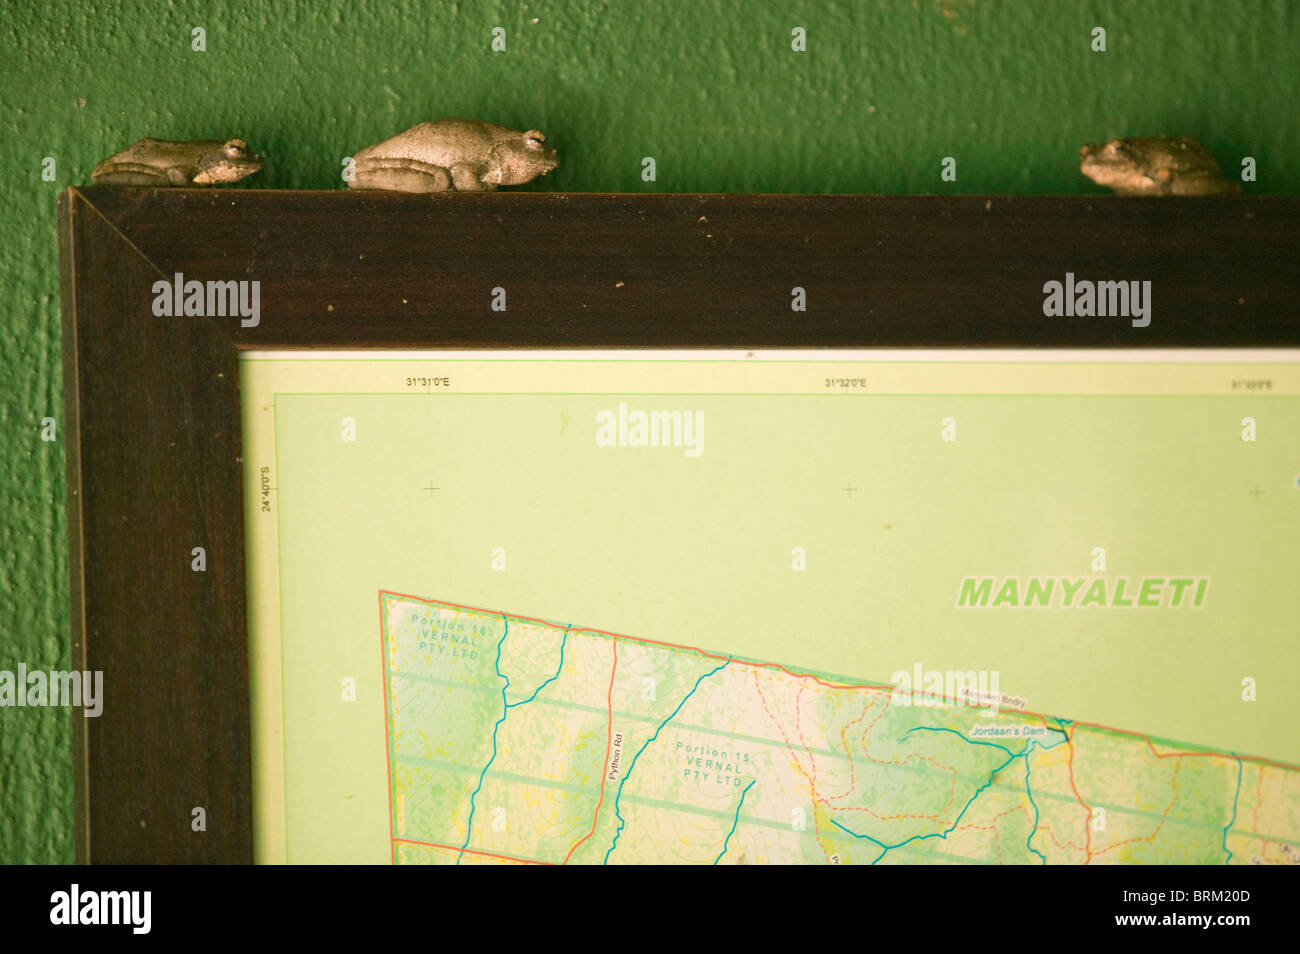 South Africa Frogs Stockfotos & South Africa Frogs Bilder - Alamy